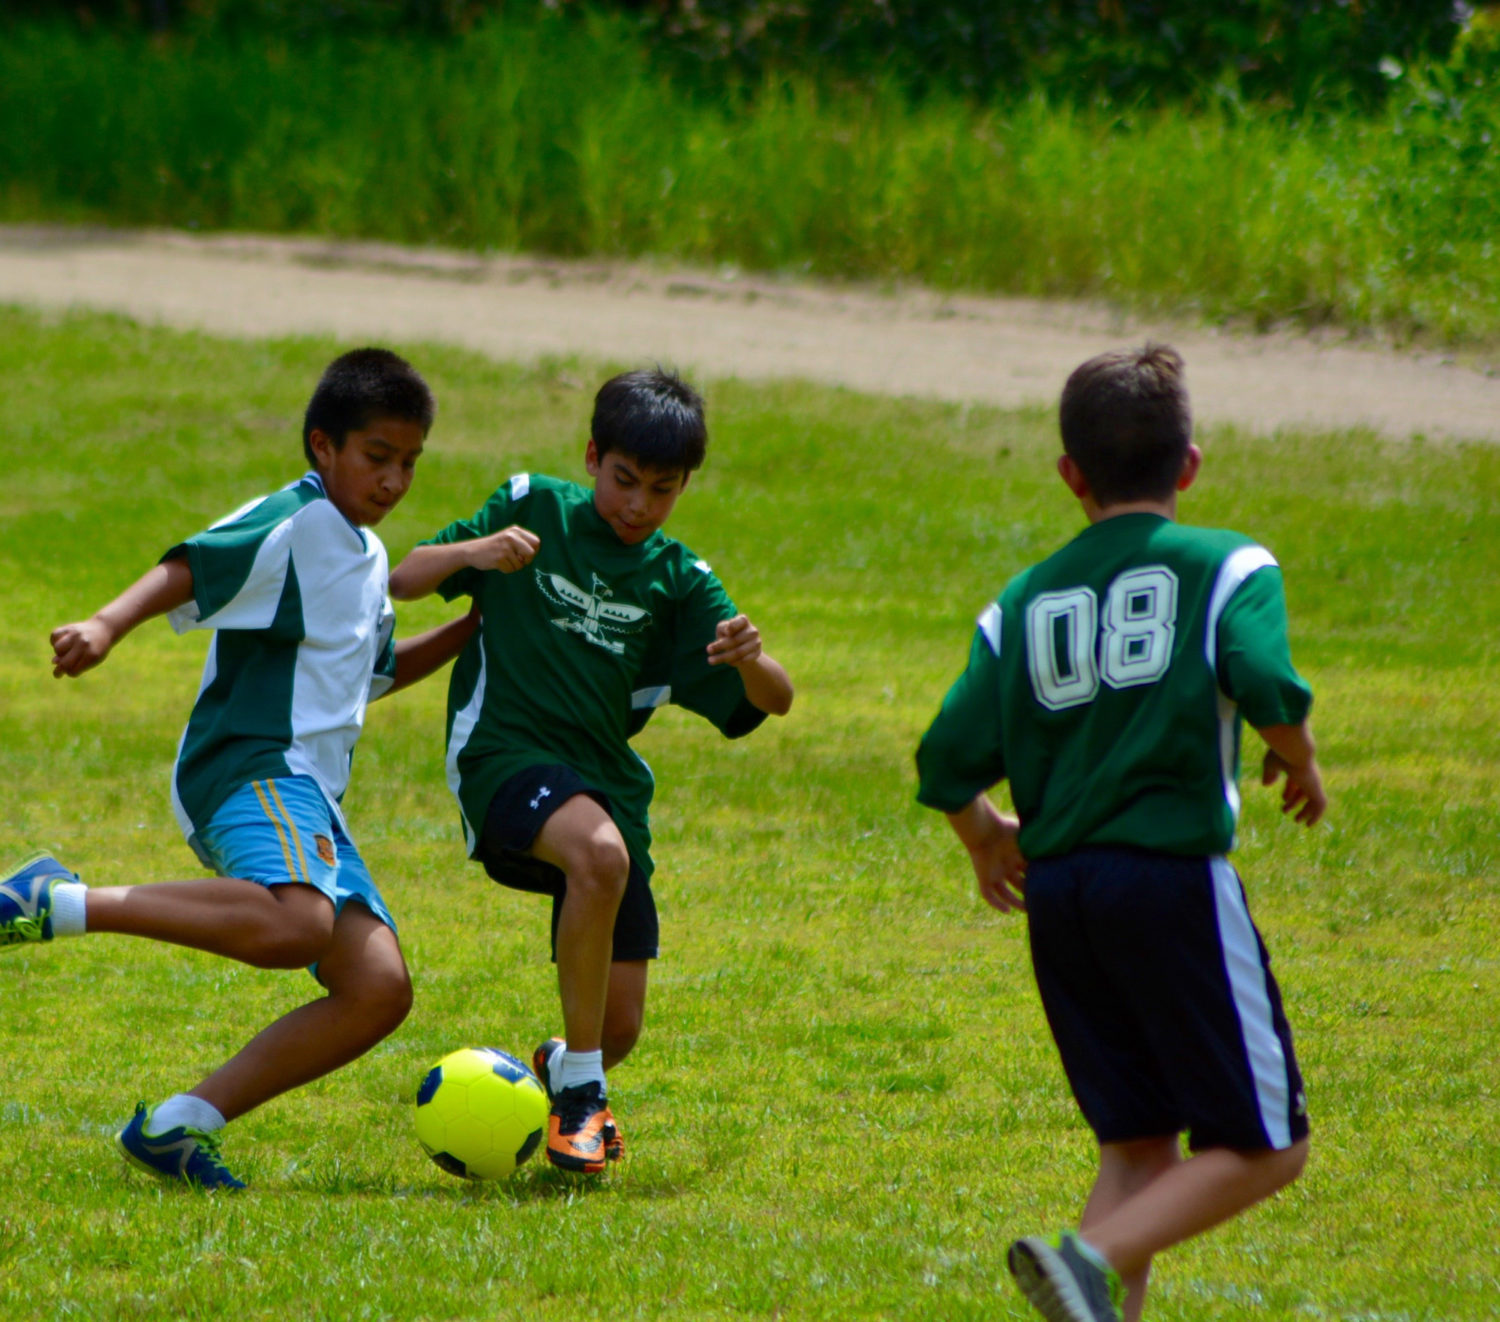 Boys playing soccer at boy's summer camp